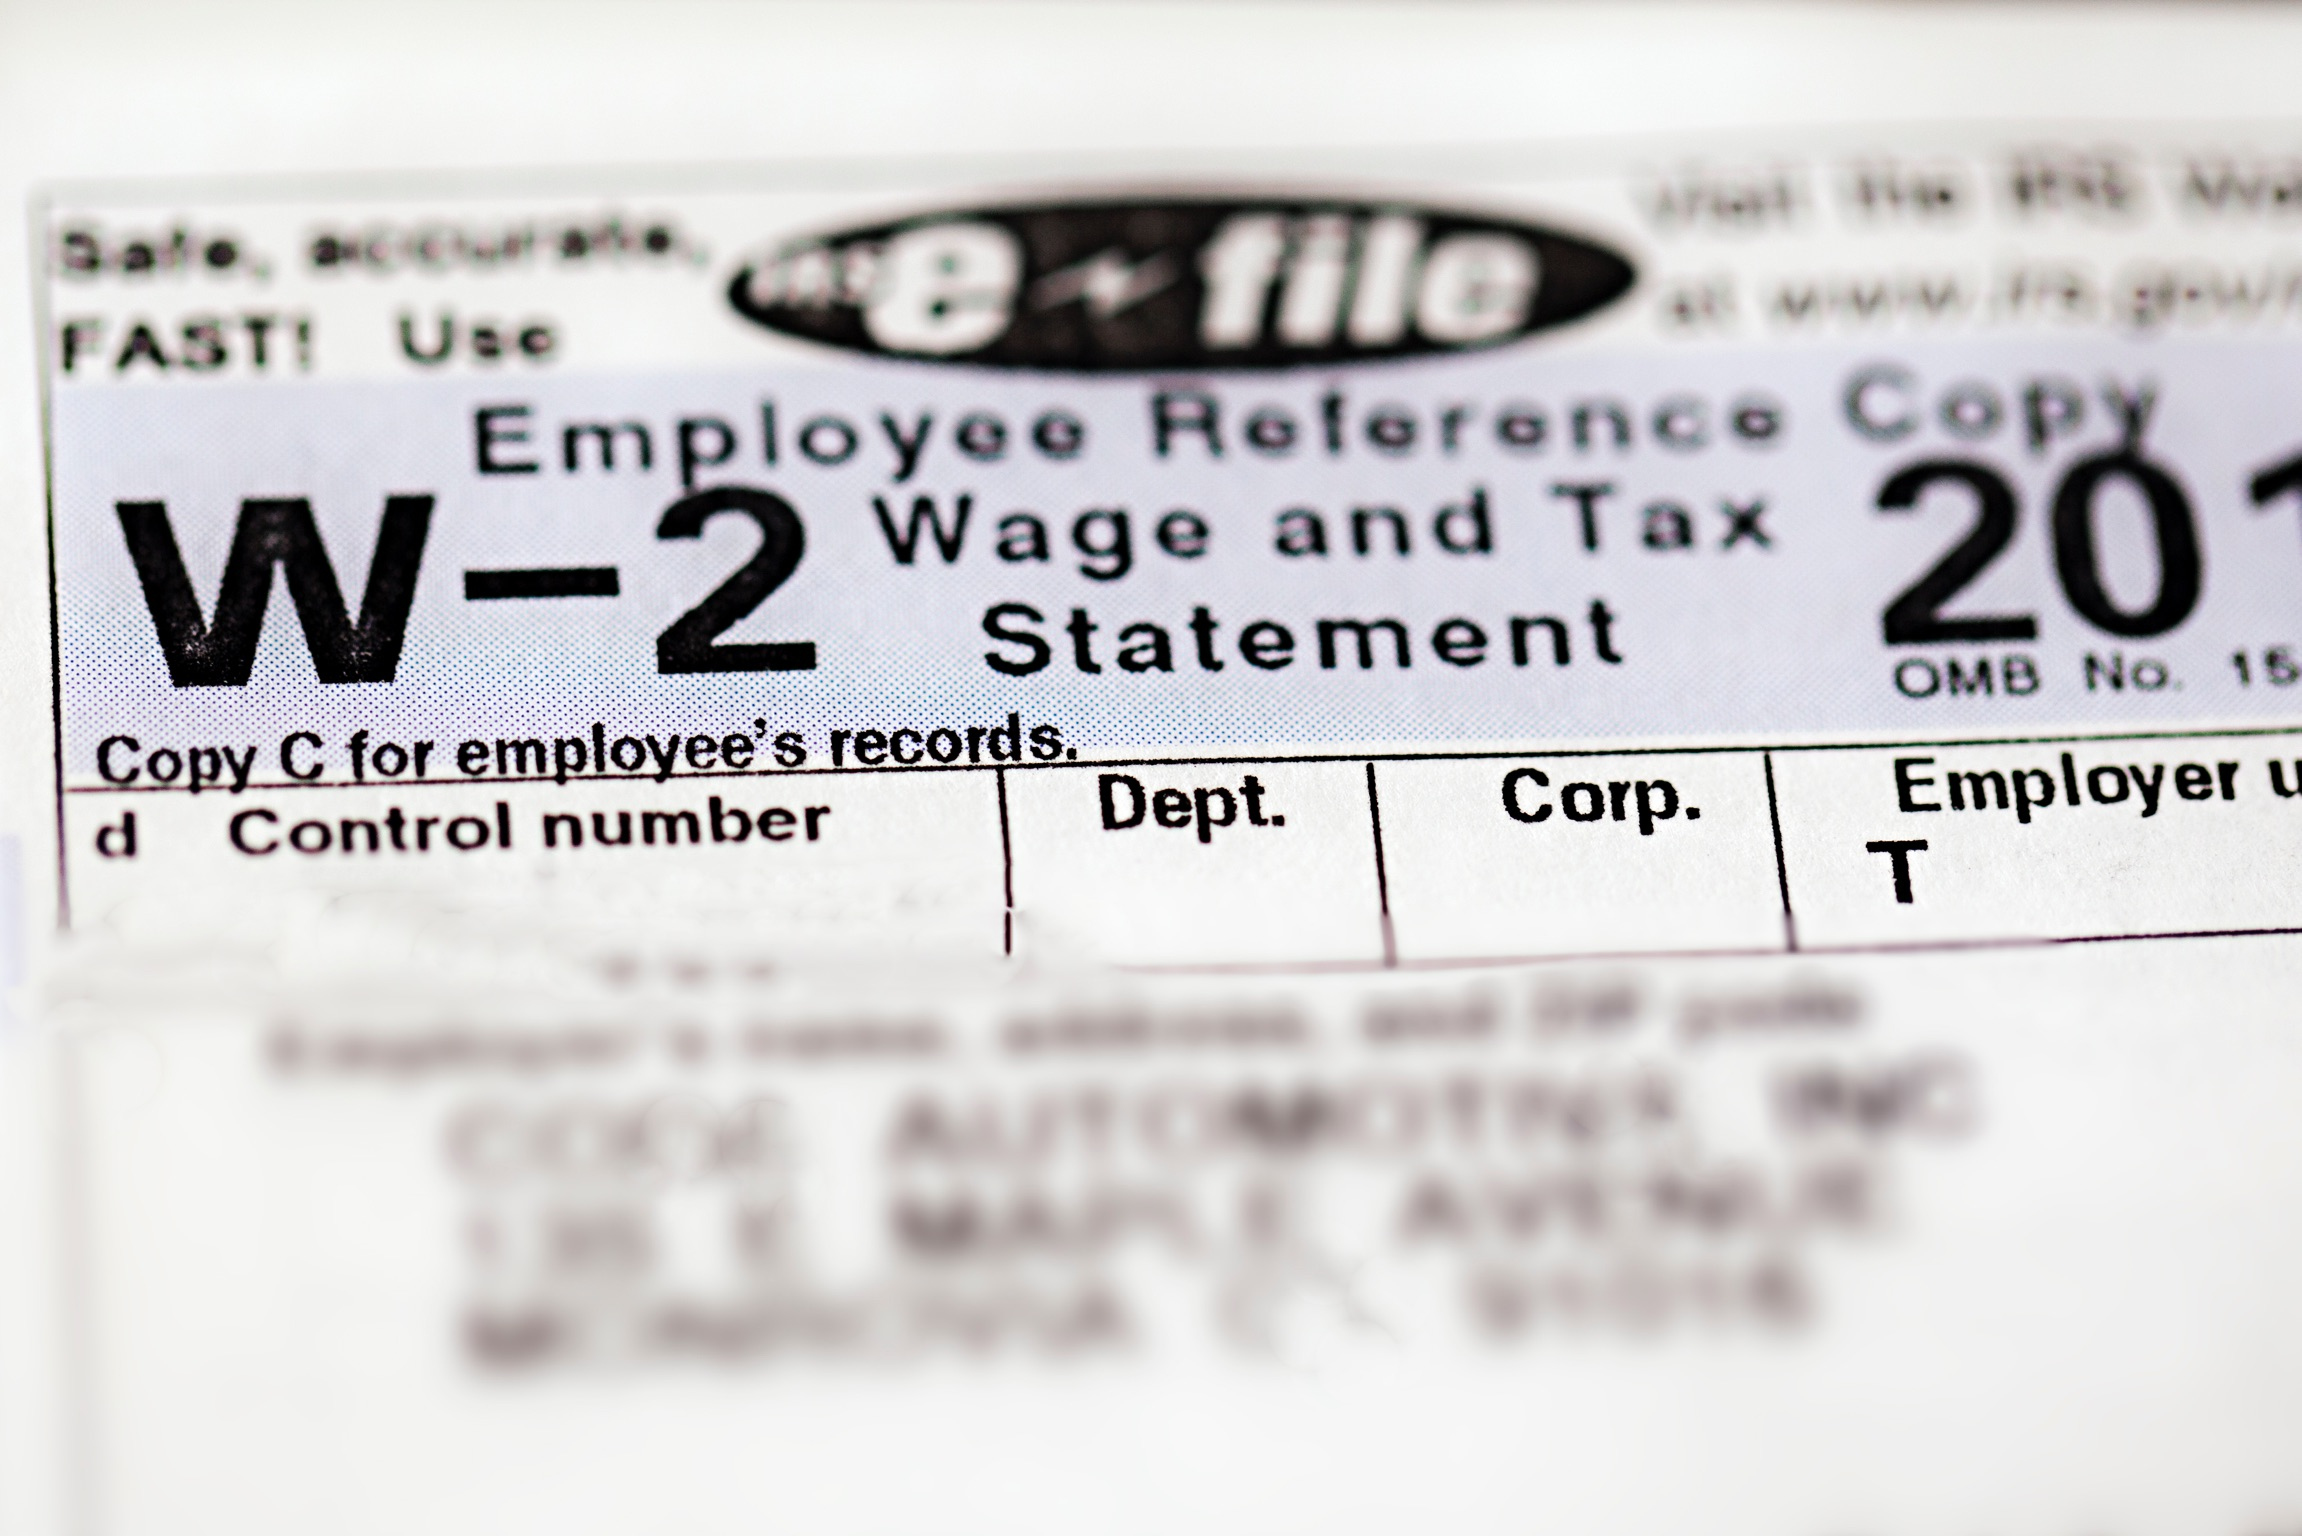 How to Look Up a State Employer Identification Number